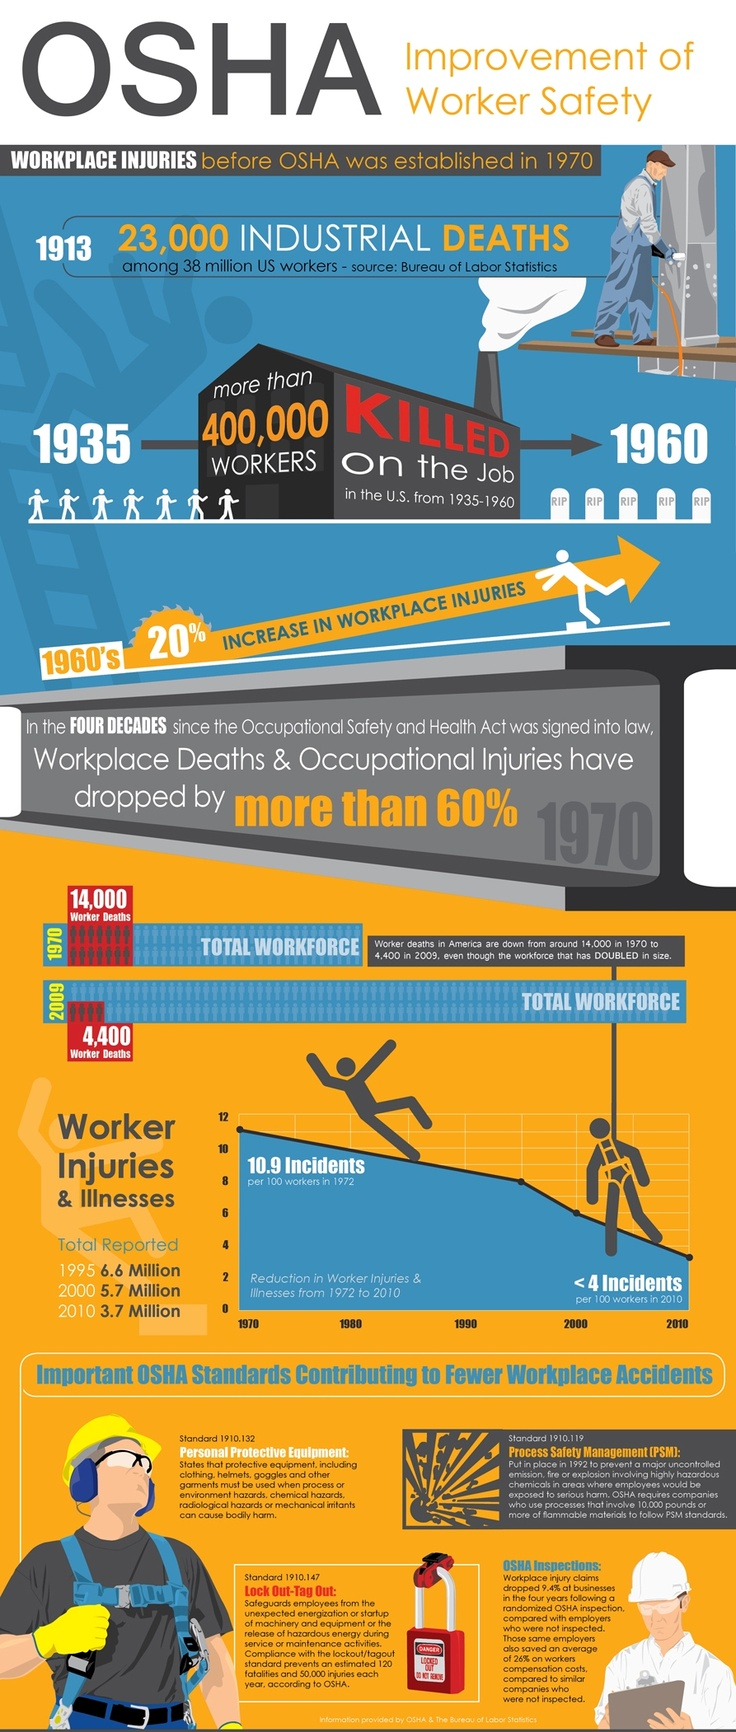 The Impact of Safety at Work This infographic shows how workplace accidents and deaths have decreased dramatically since OSHA was established in 1970.